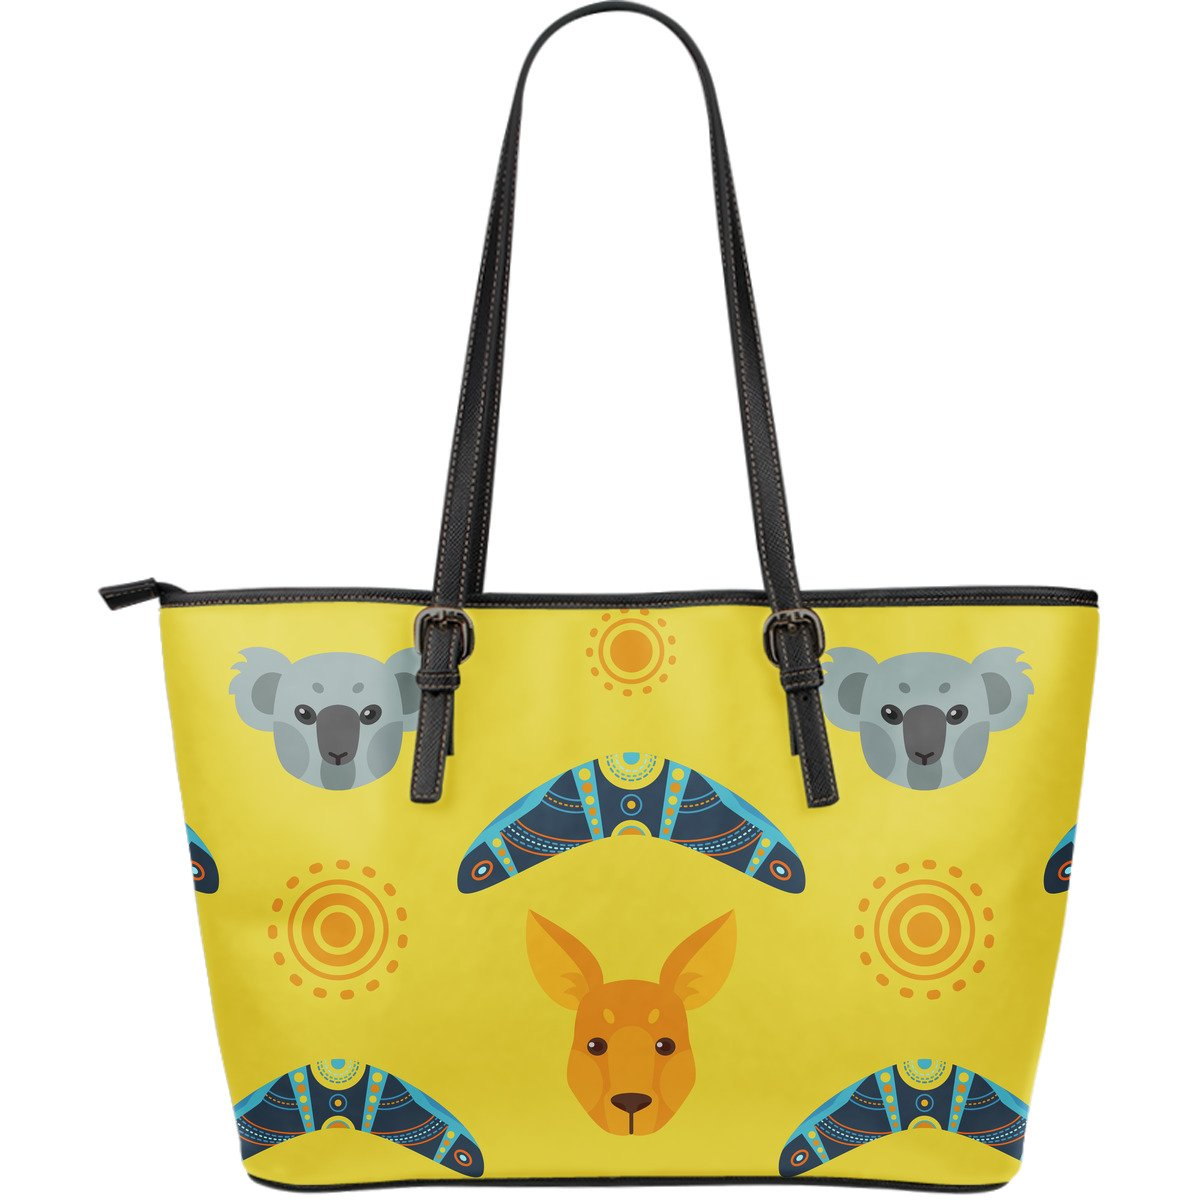 AUSTRALIA KANGAROO KOALA LARGE LEATHER TOTE BAG 08 E7 1ST